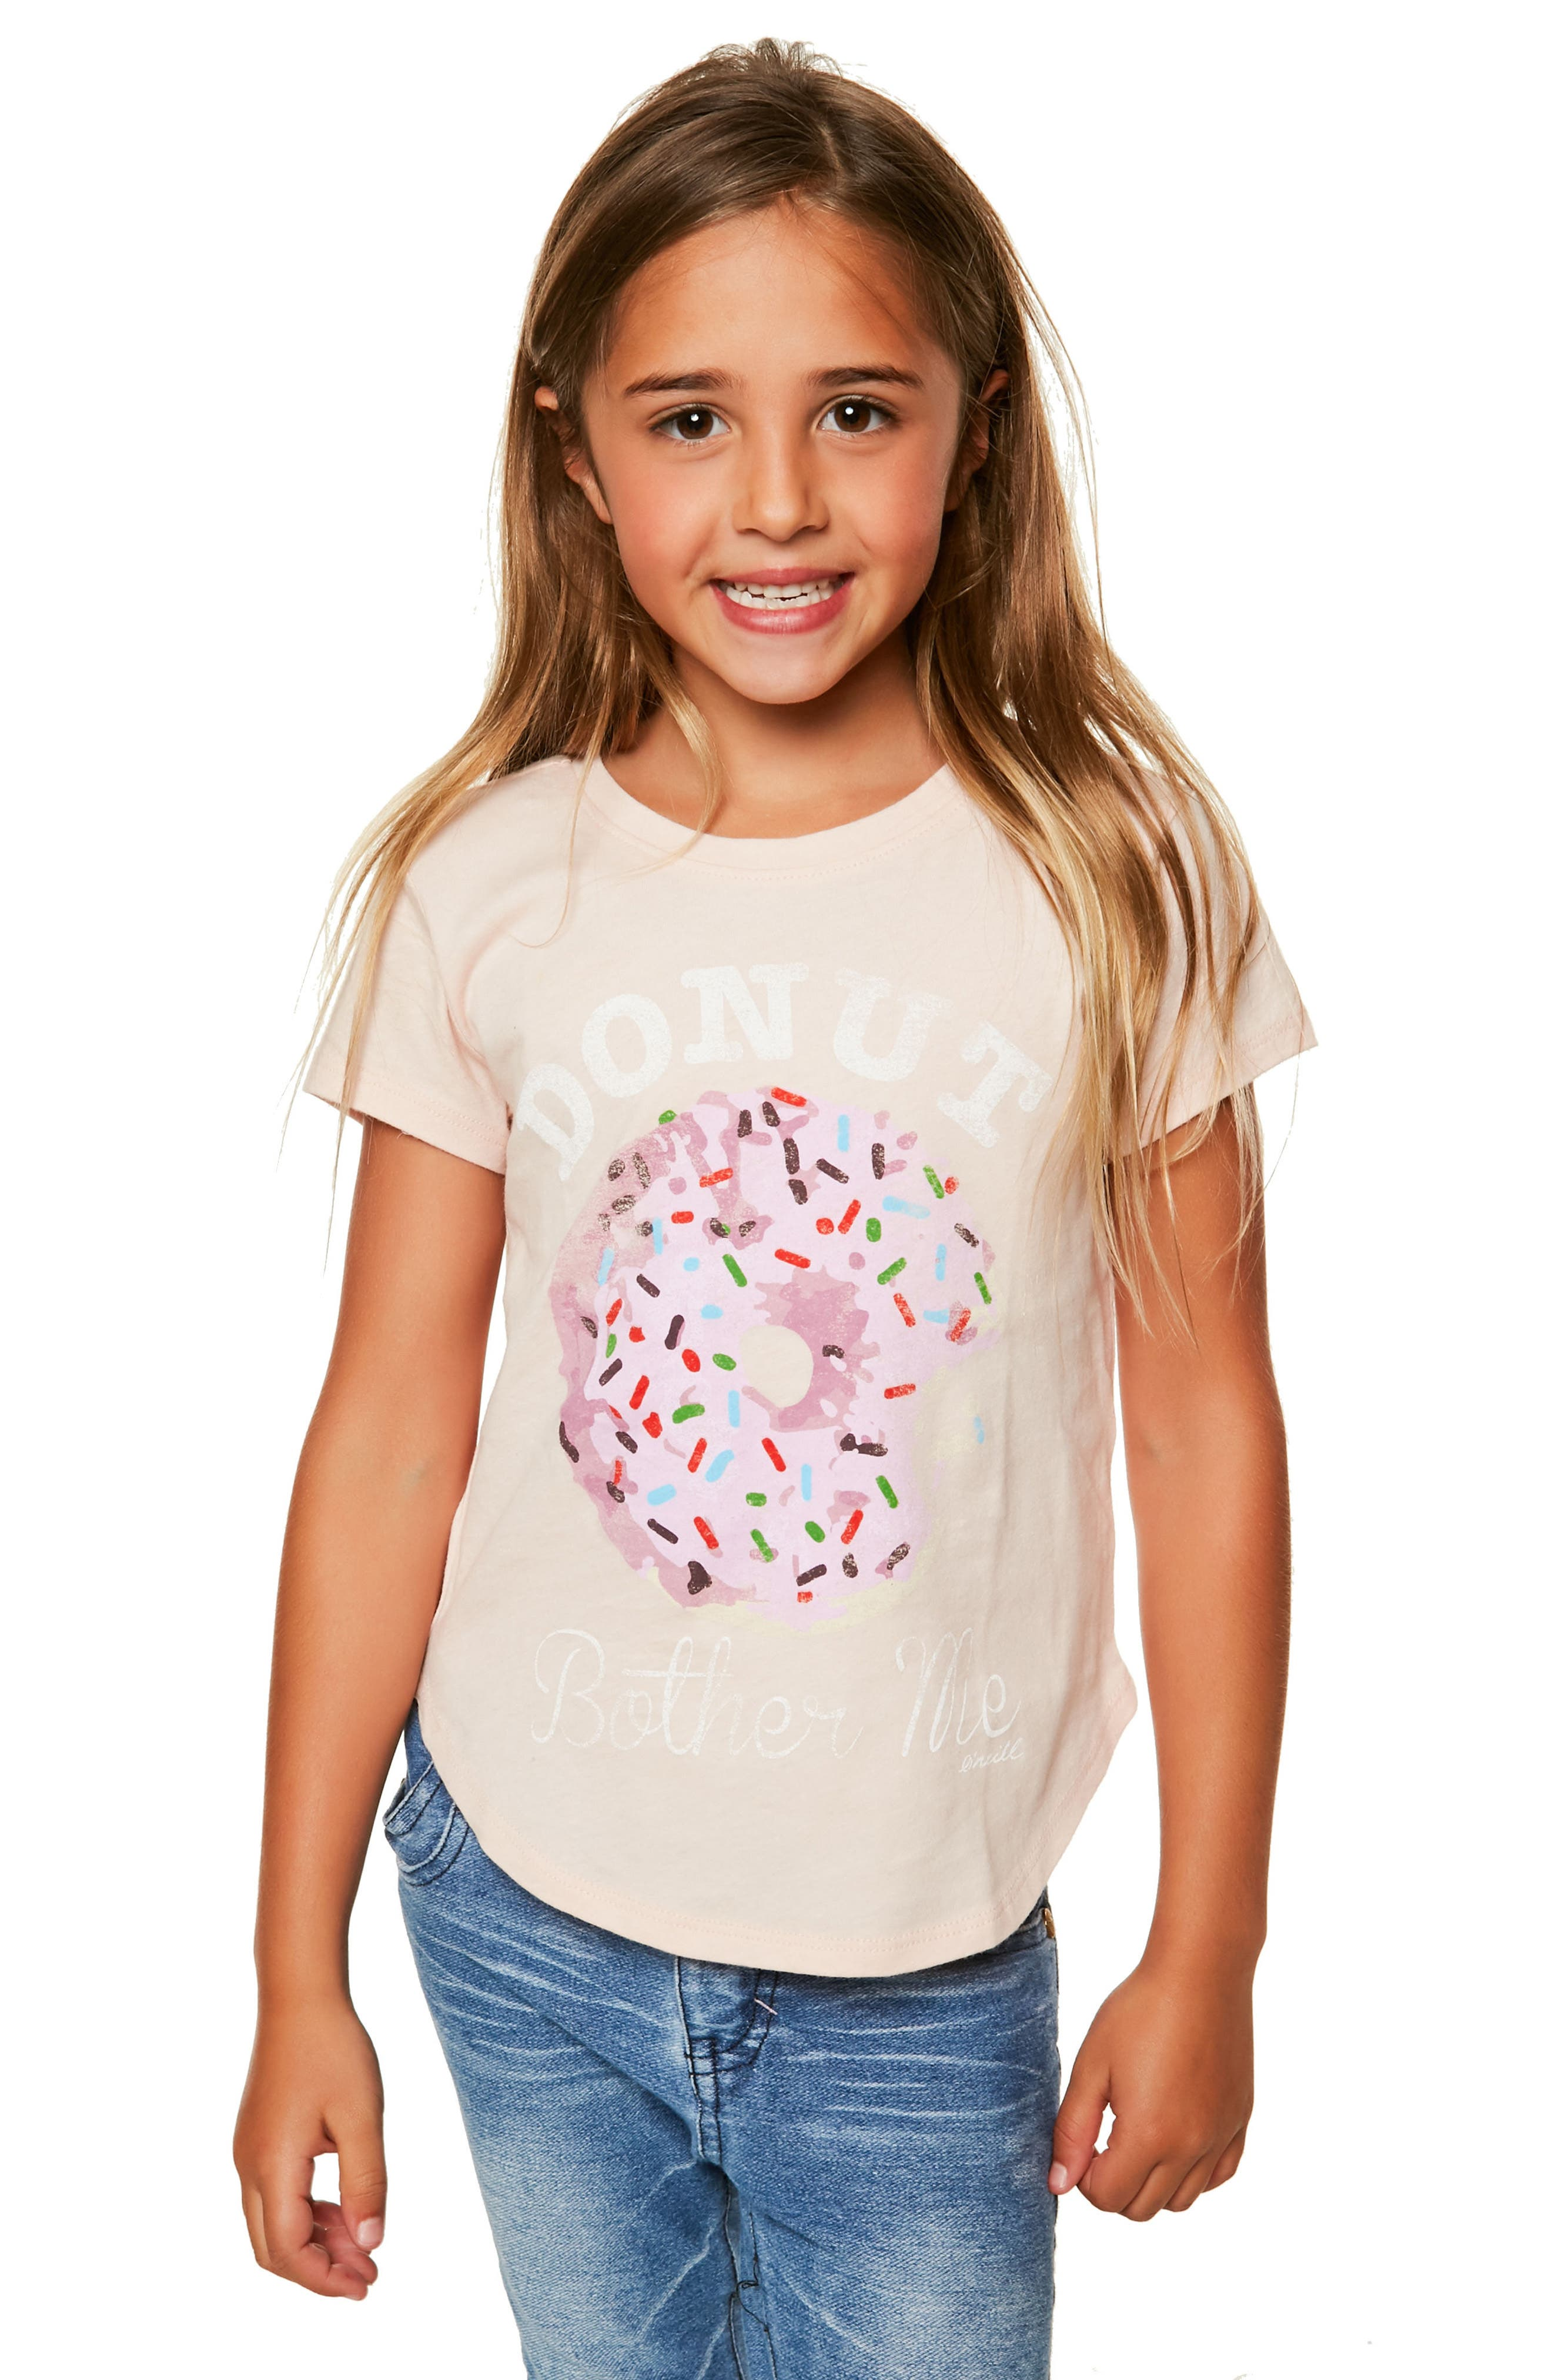 Donut Bother Me Graphic Tee,                             Alternate thumbnail 2, color,                             667